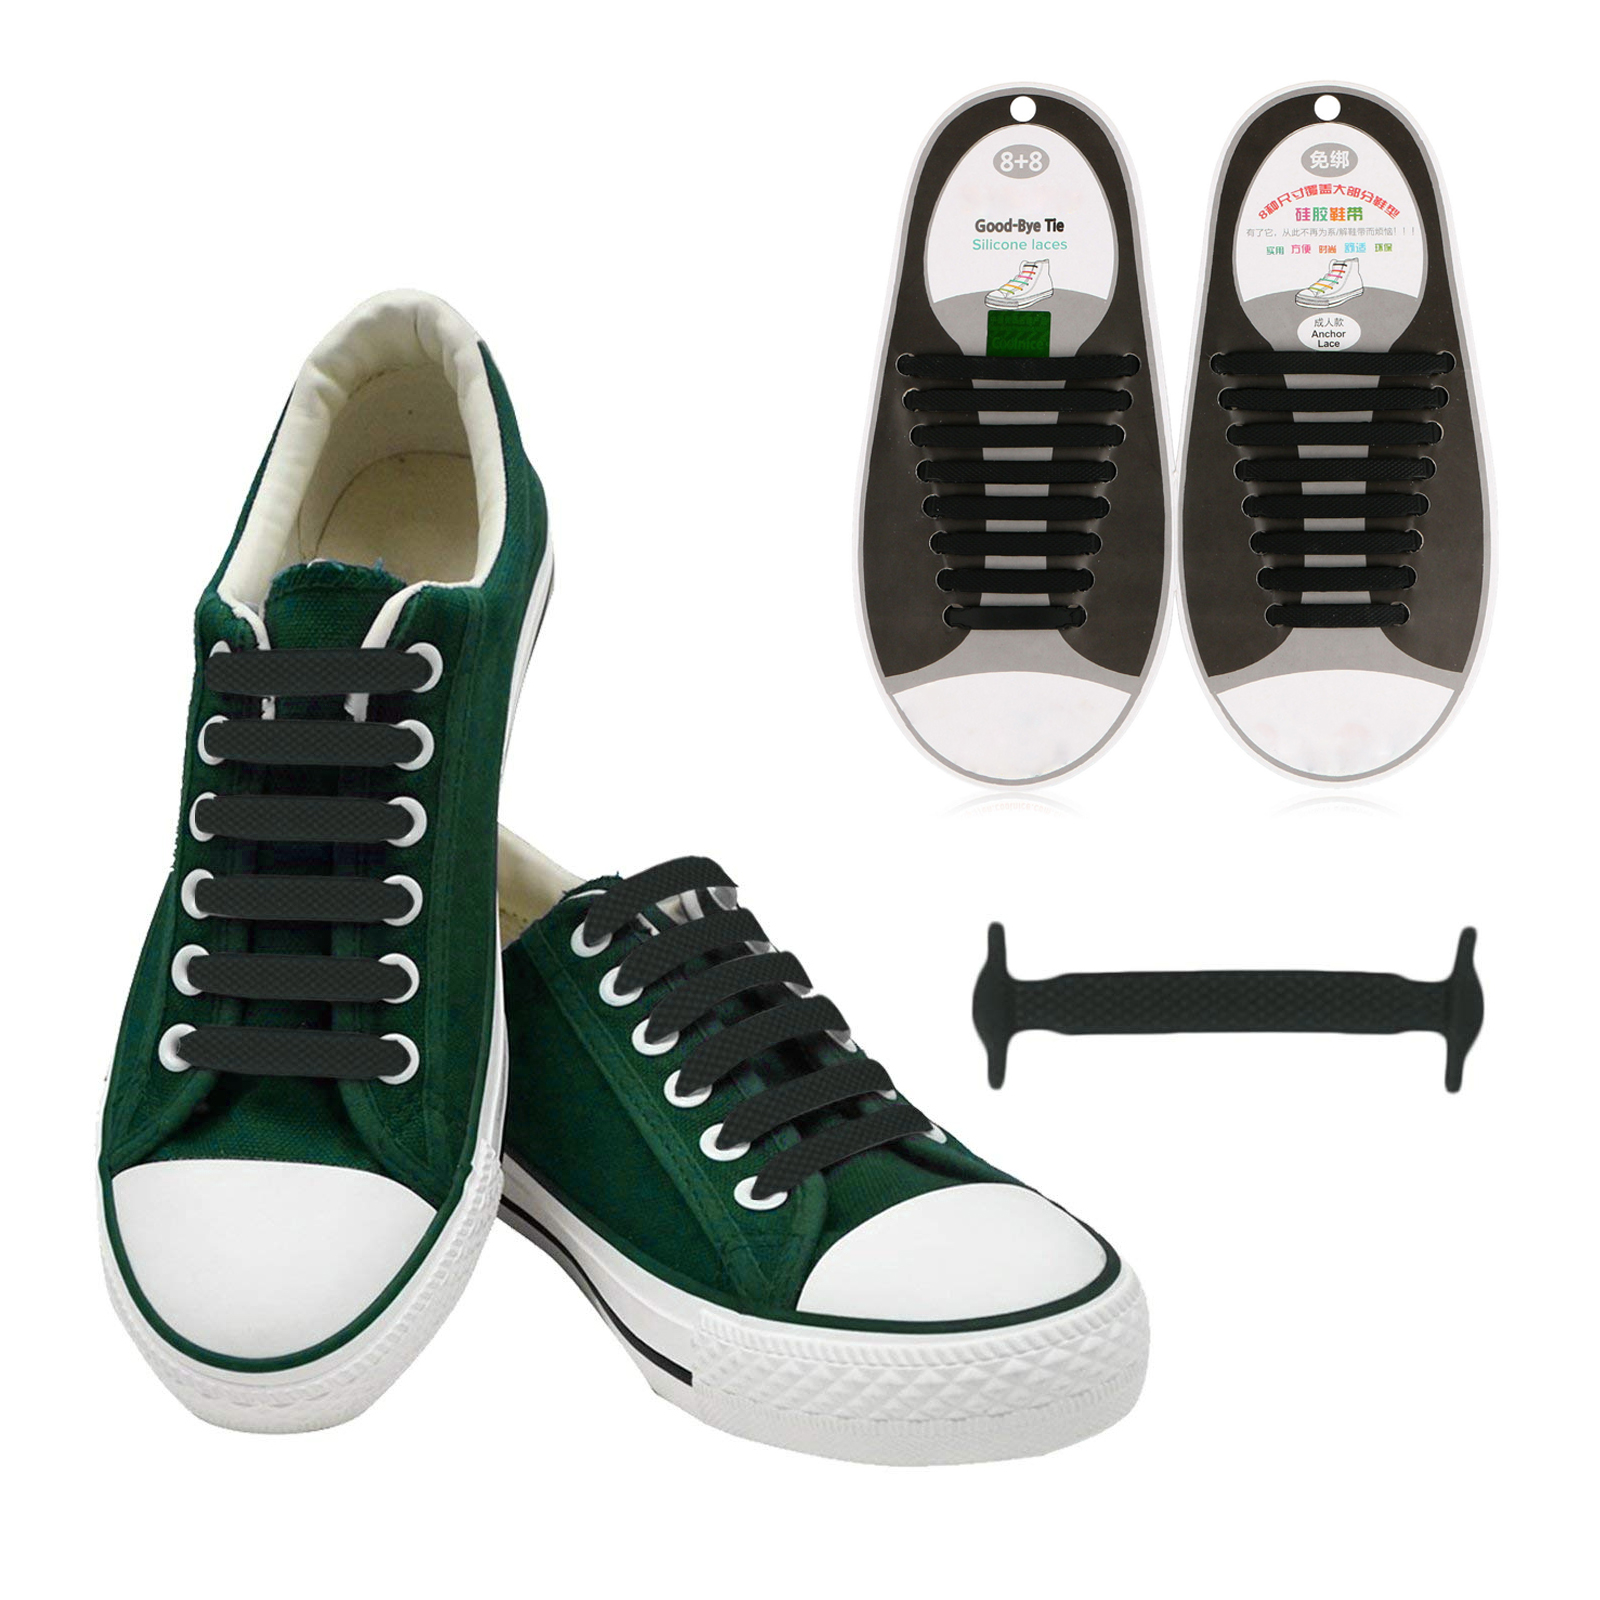 16pcs-Lazy-No-Tie-Shoelaces-Elastic-Silicone-Running-Sneakers-Strings-Shoe-Laces